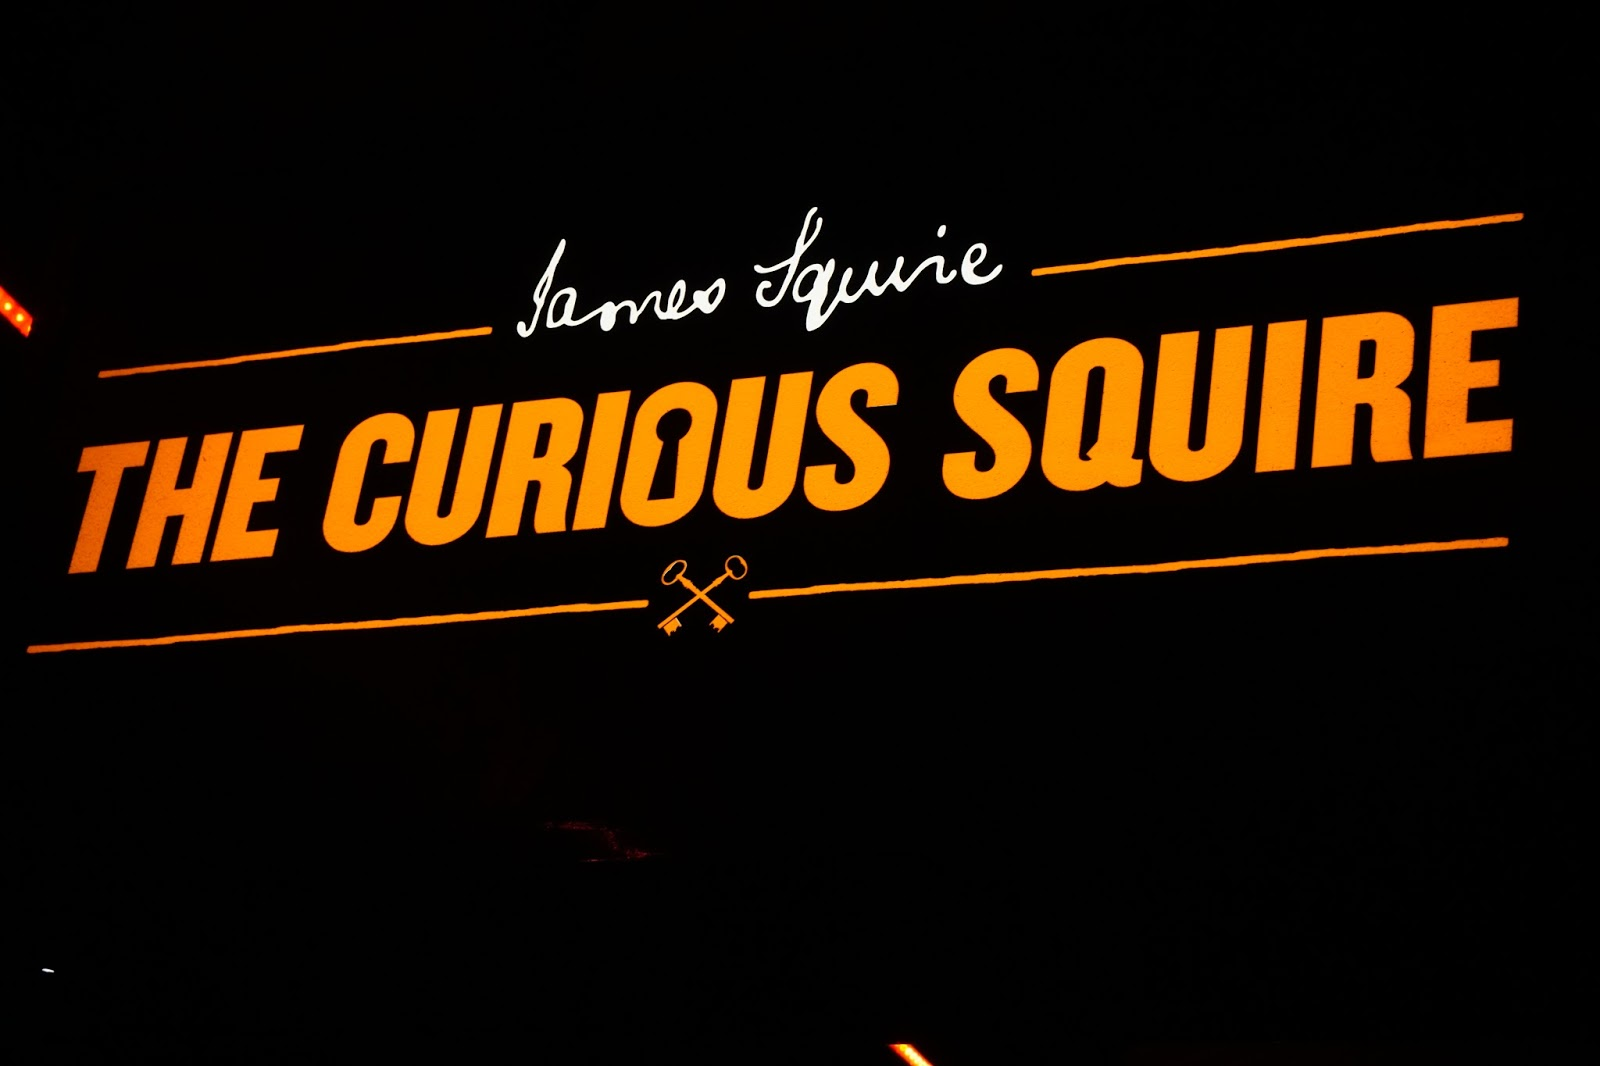 The Curious Squire, North Adelaide